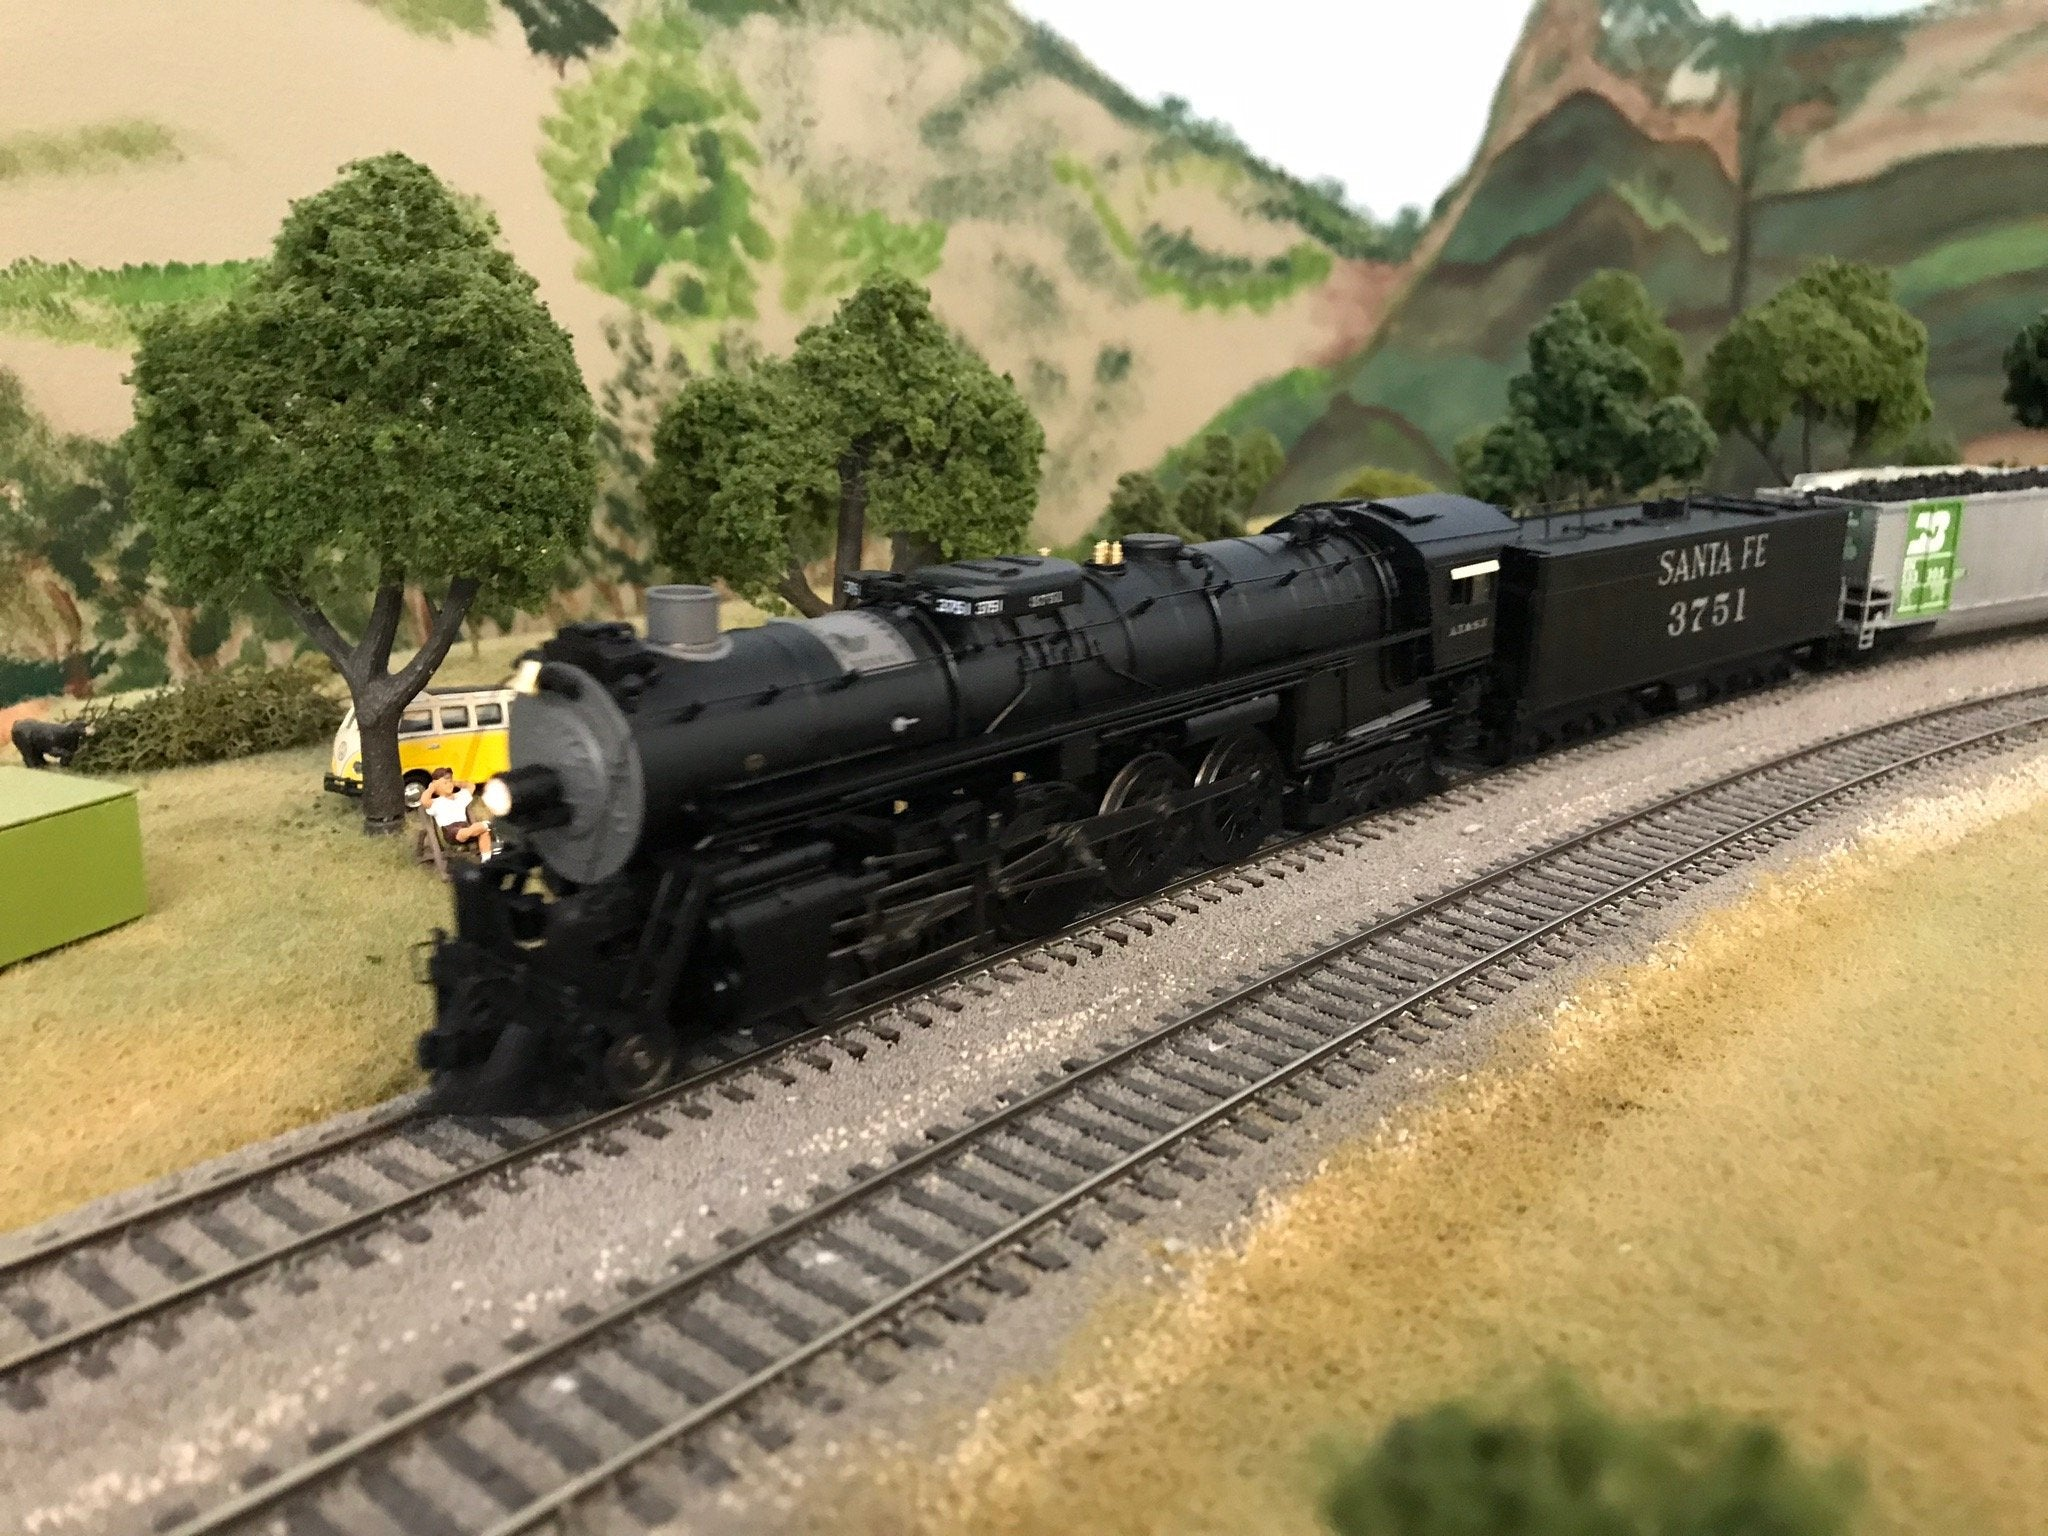 HO Scale Train Layout Open House June 10th in Bedford Texas (FREE)